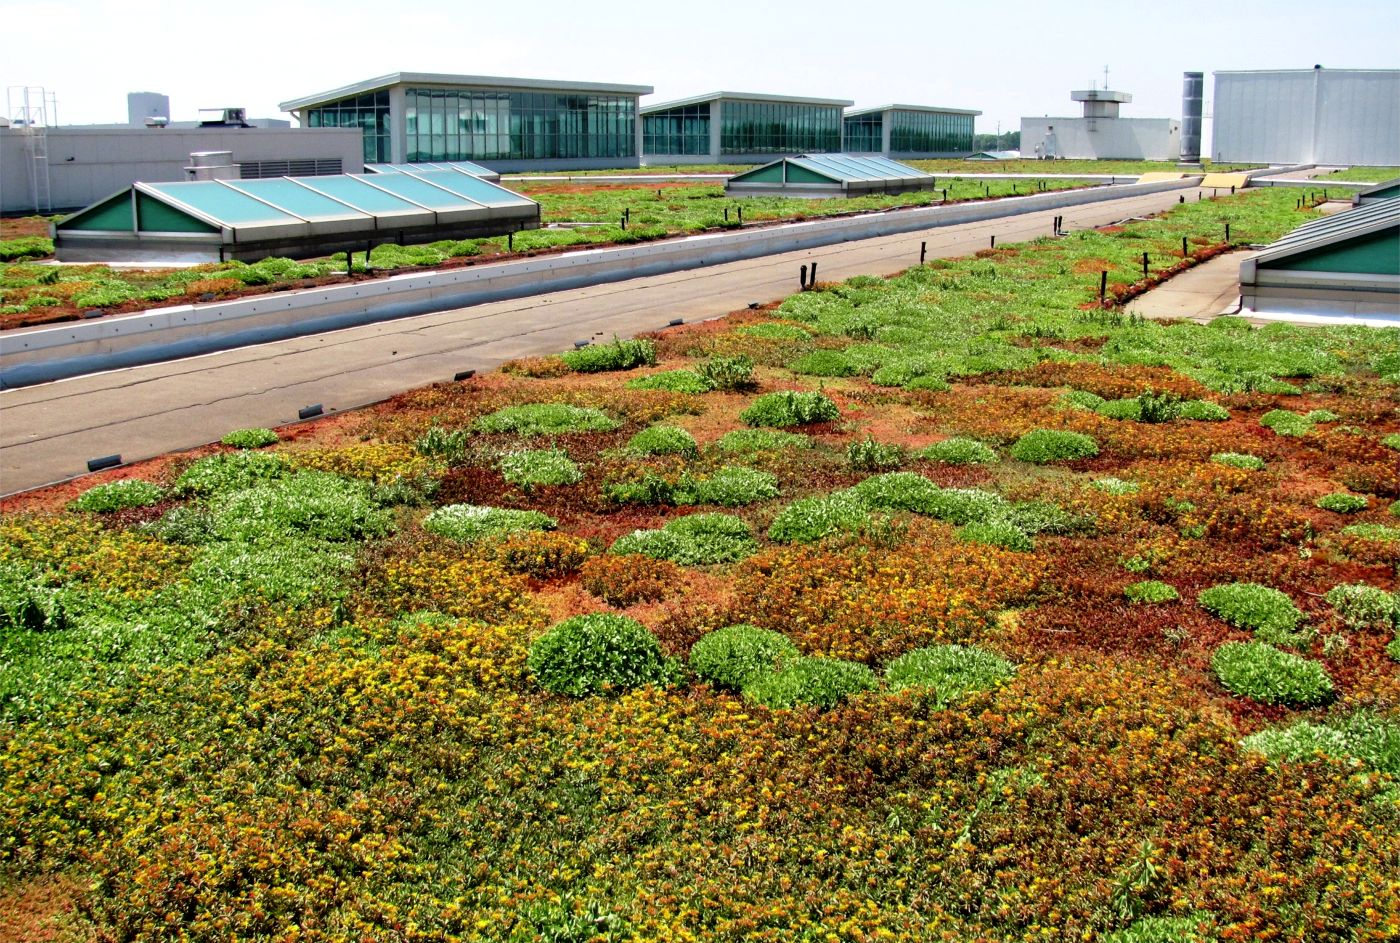 Ford River Rouge Plant >> Ford Motor Company's River Rouge Truck Plant - Greenroofs.com